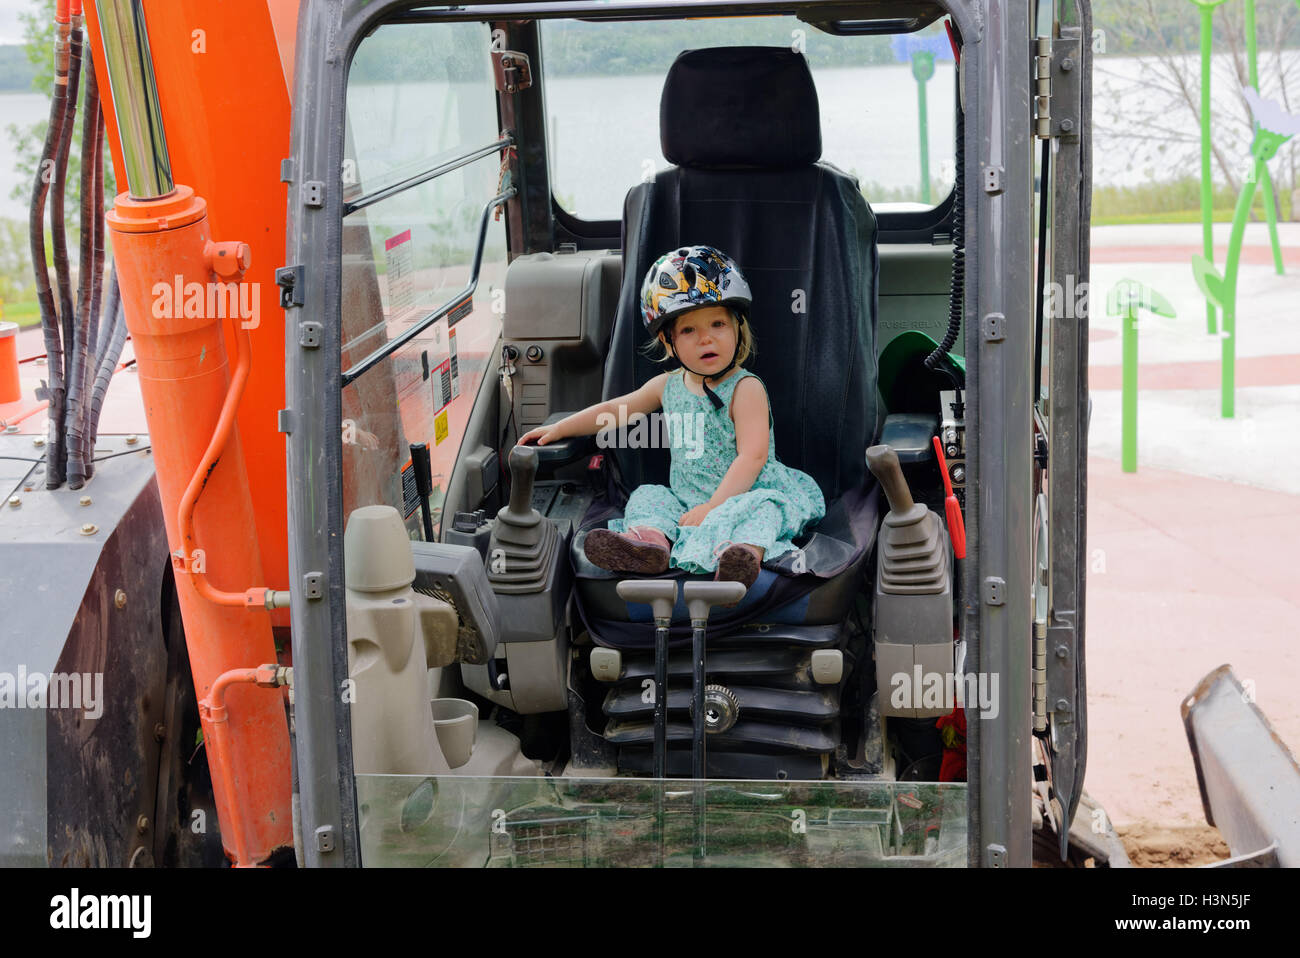 A young girl (2 yrs old) sitting a JCB (excavator) cabin pretending to operate it. - Stock Image